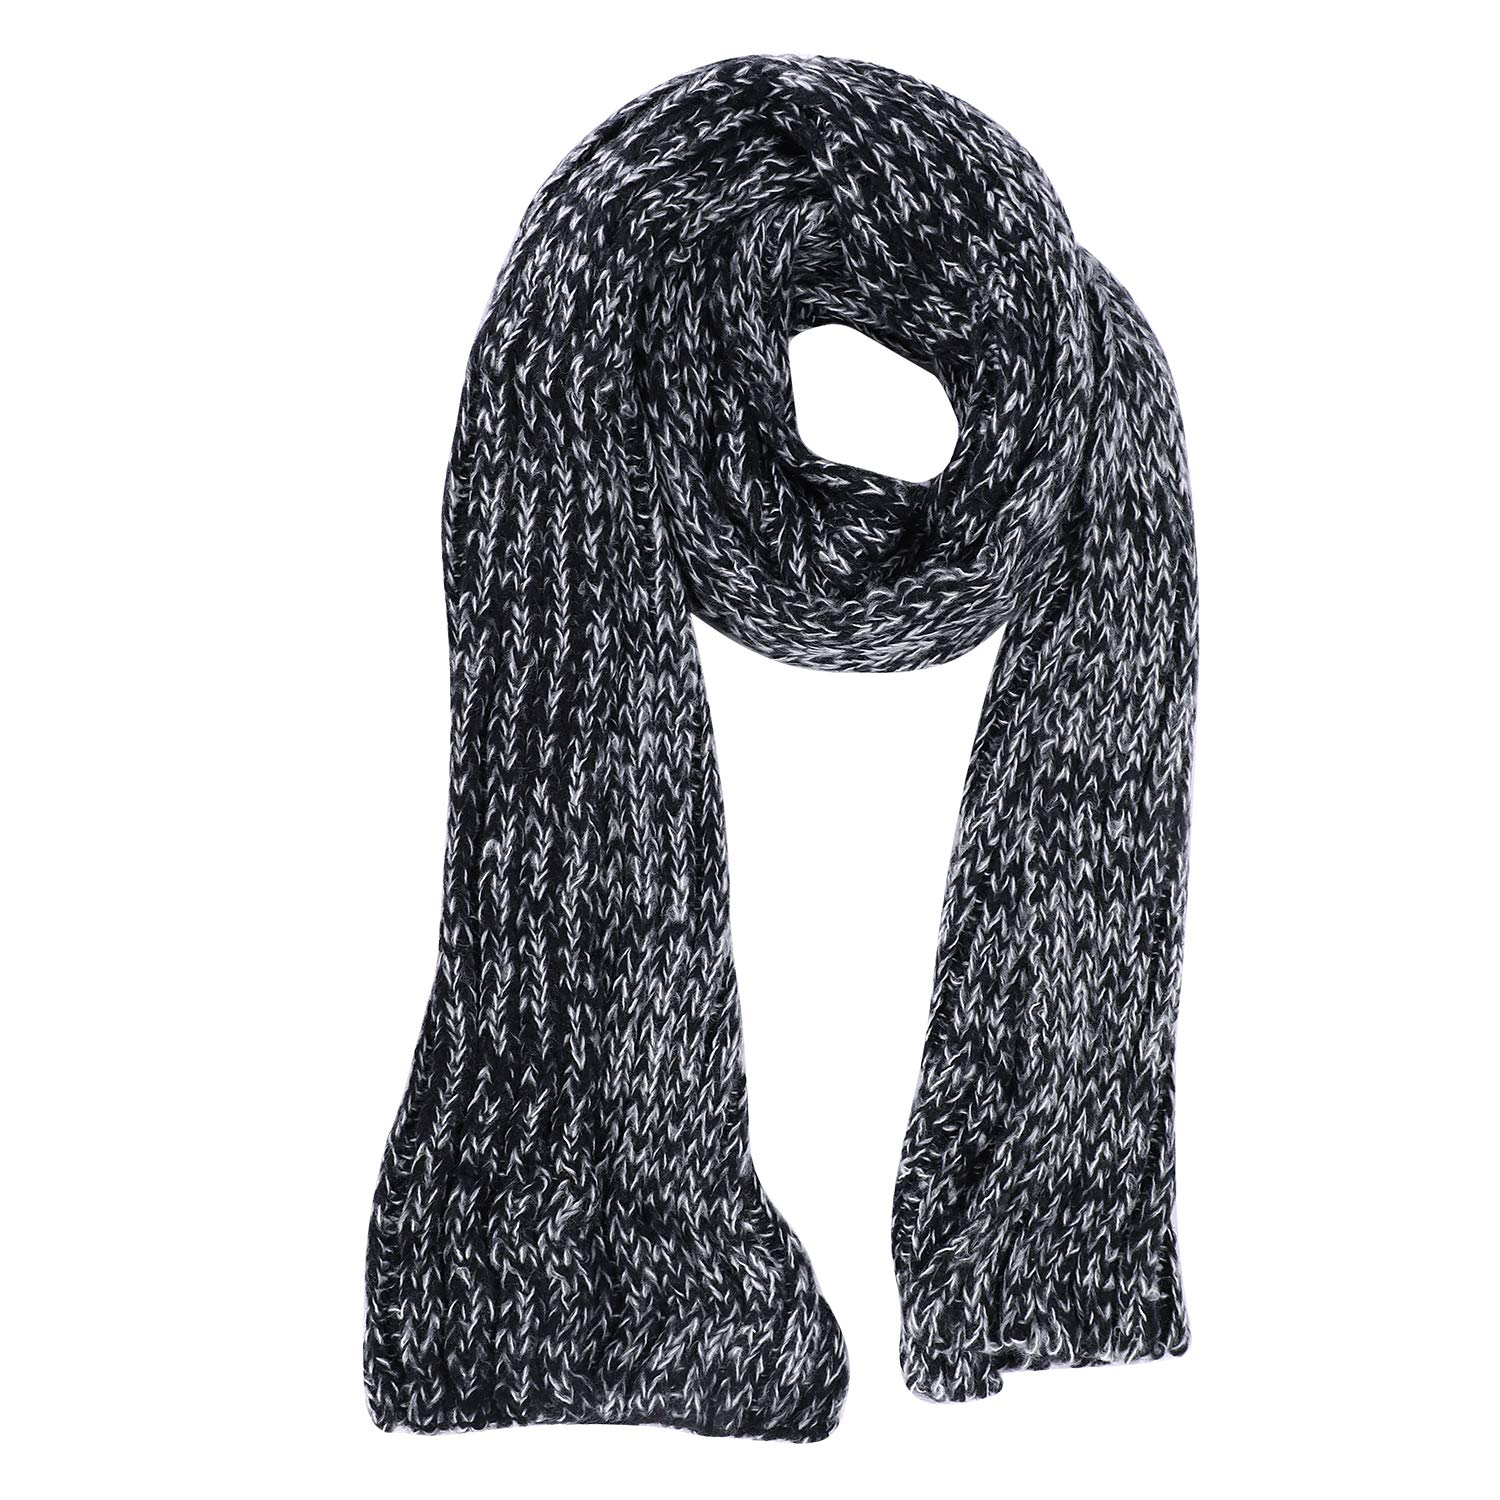 color  2 Women Men Knit Scarf Cold Weather Winter Thicken Warm Woolen Long Shawl Scarves